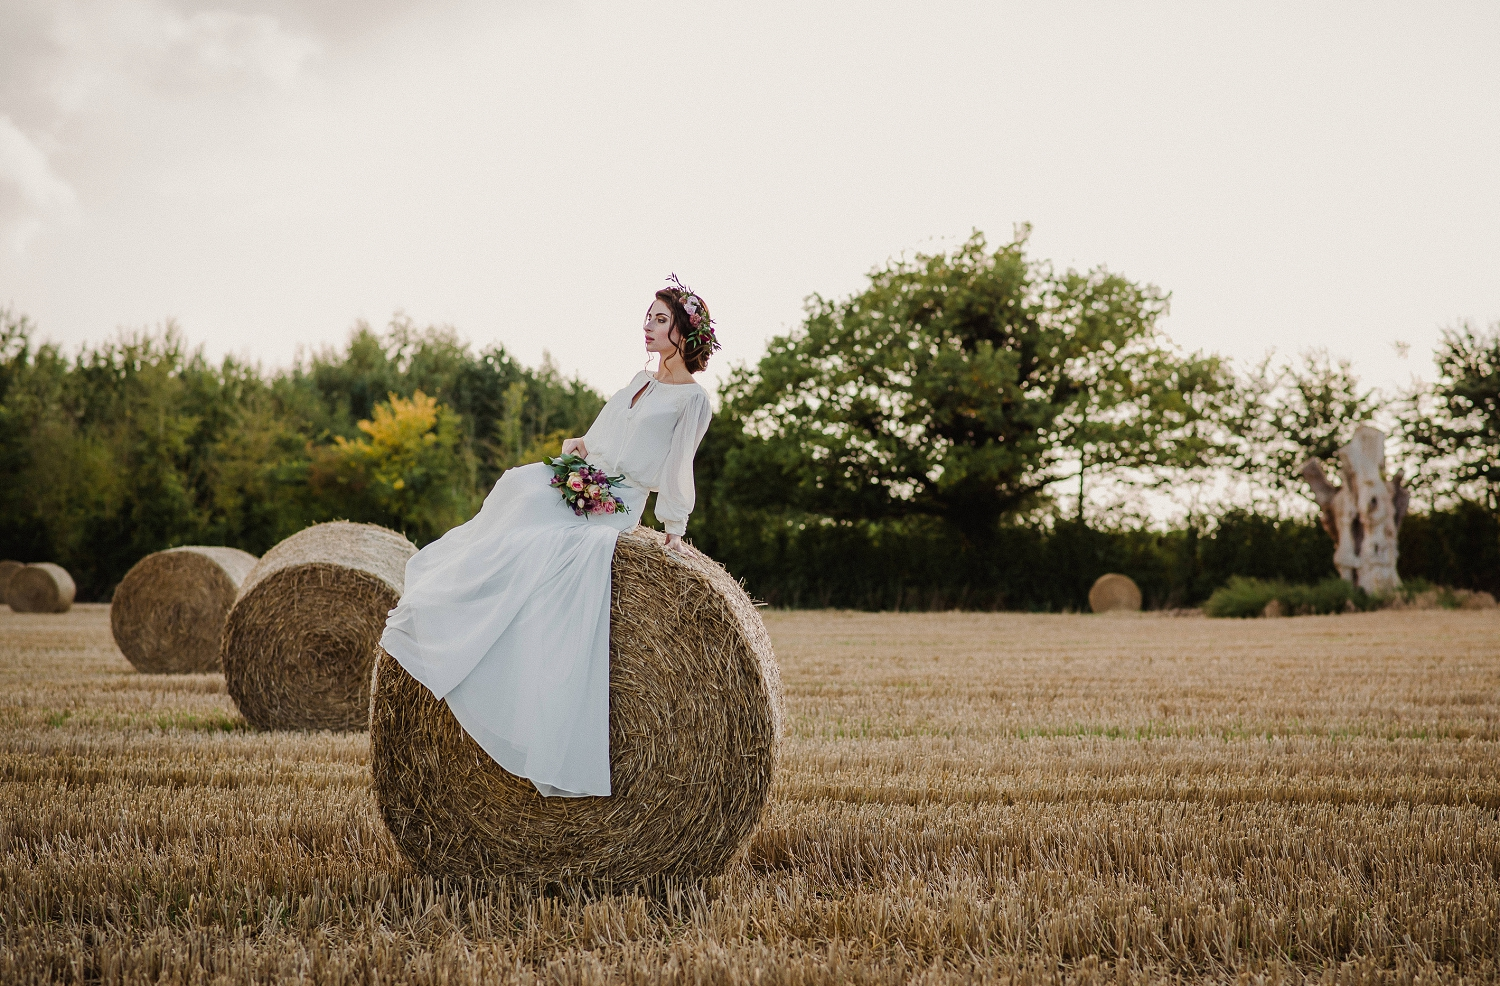 Curradine_bridal_Sept_17_amytiphoto_0086.jpg